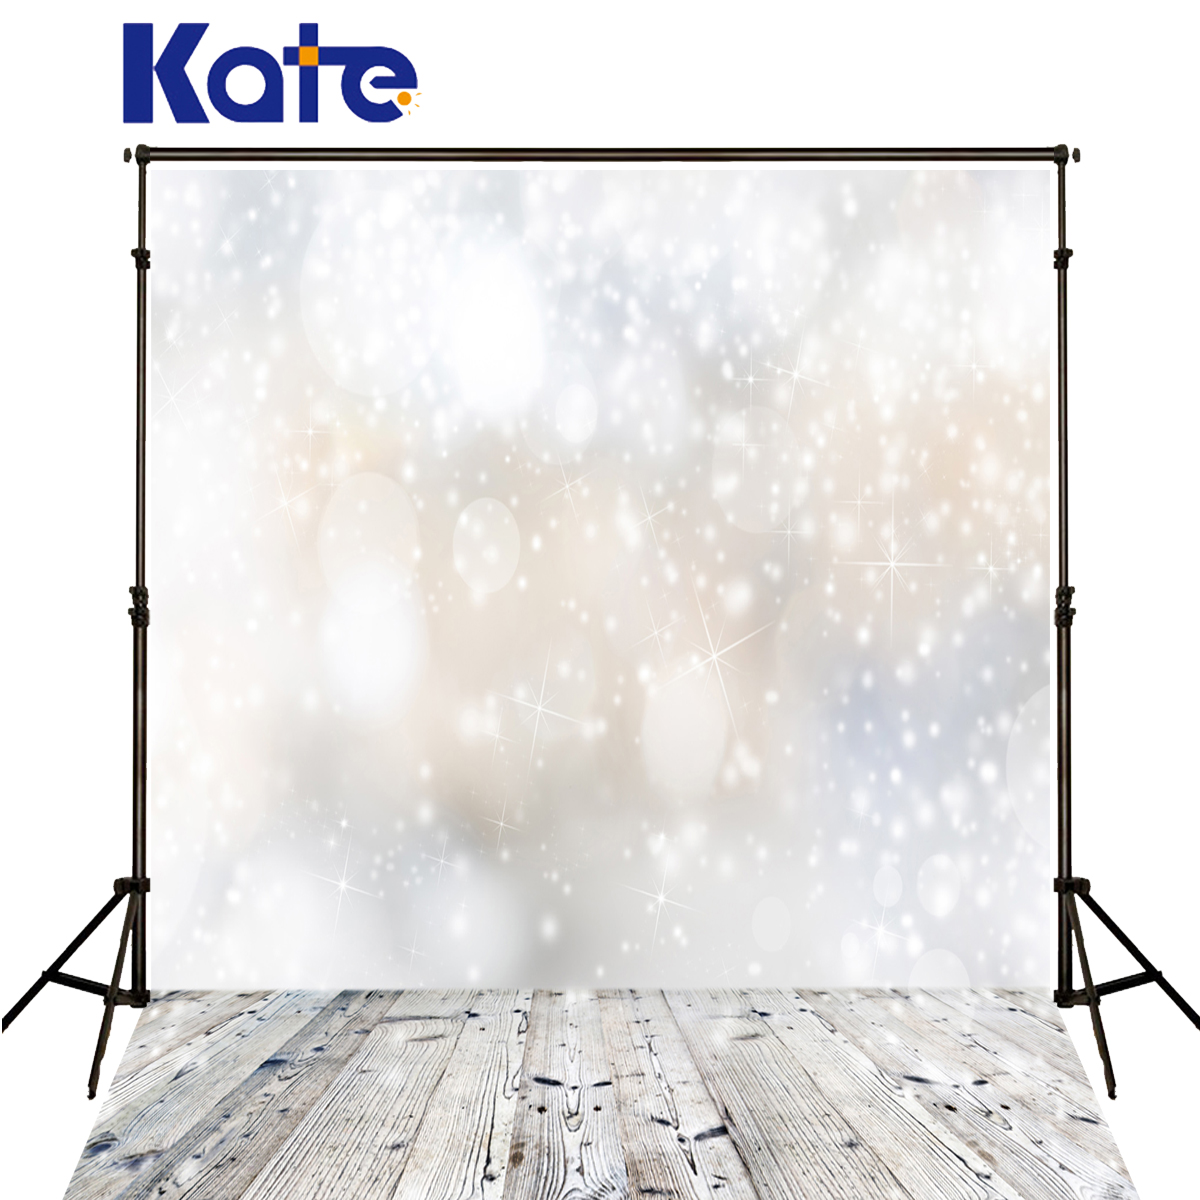 Kate Christmas Photography Backgrounds White Spot Dream Fond Studio Photo Wood Texture Floor Christmas Backdrops photo Studio<br>